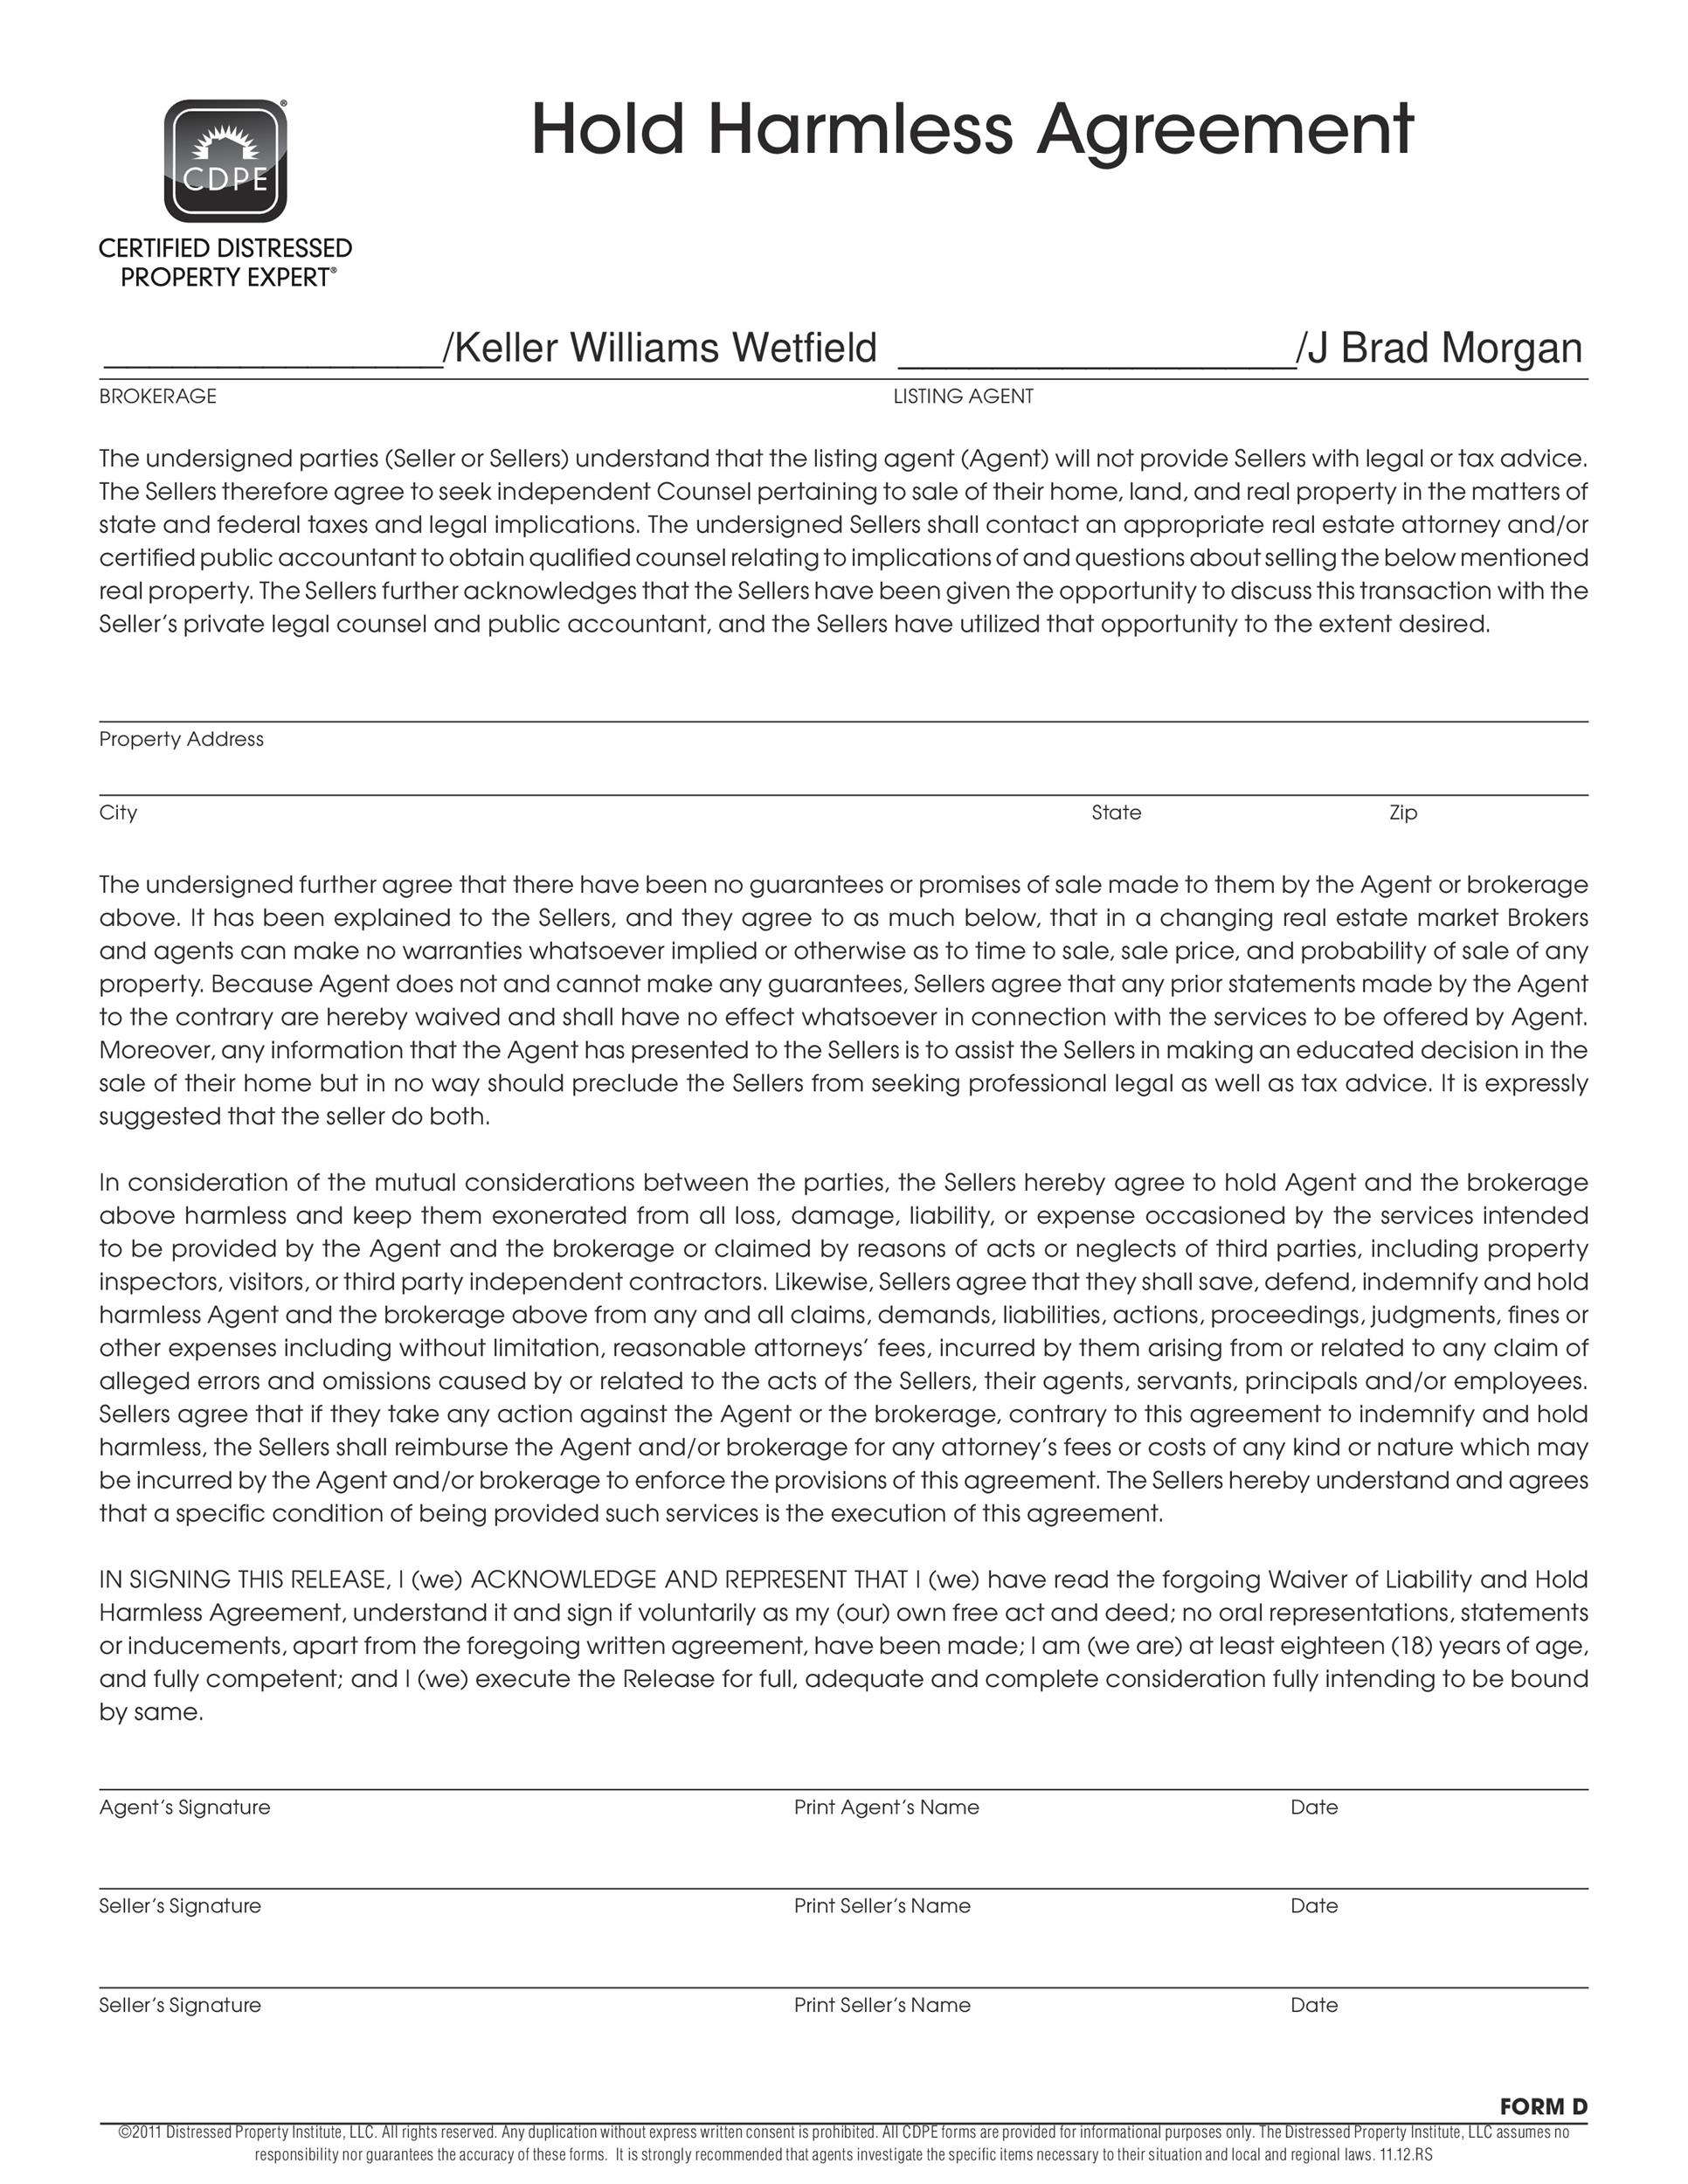 Free Hold Harmless Agreement Template 09